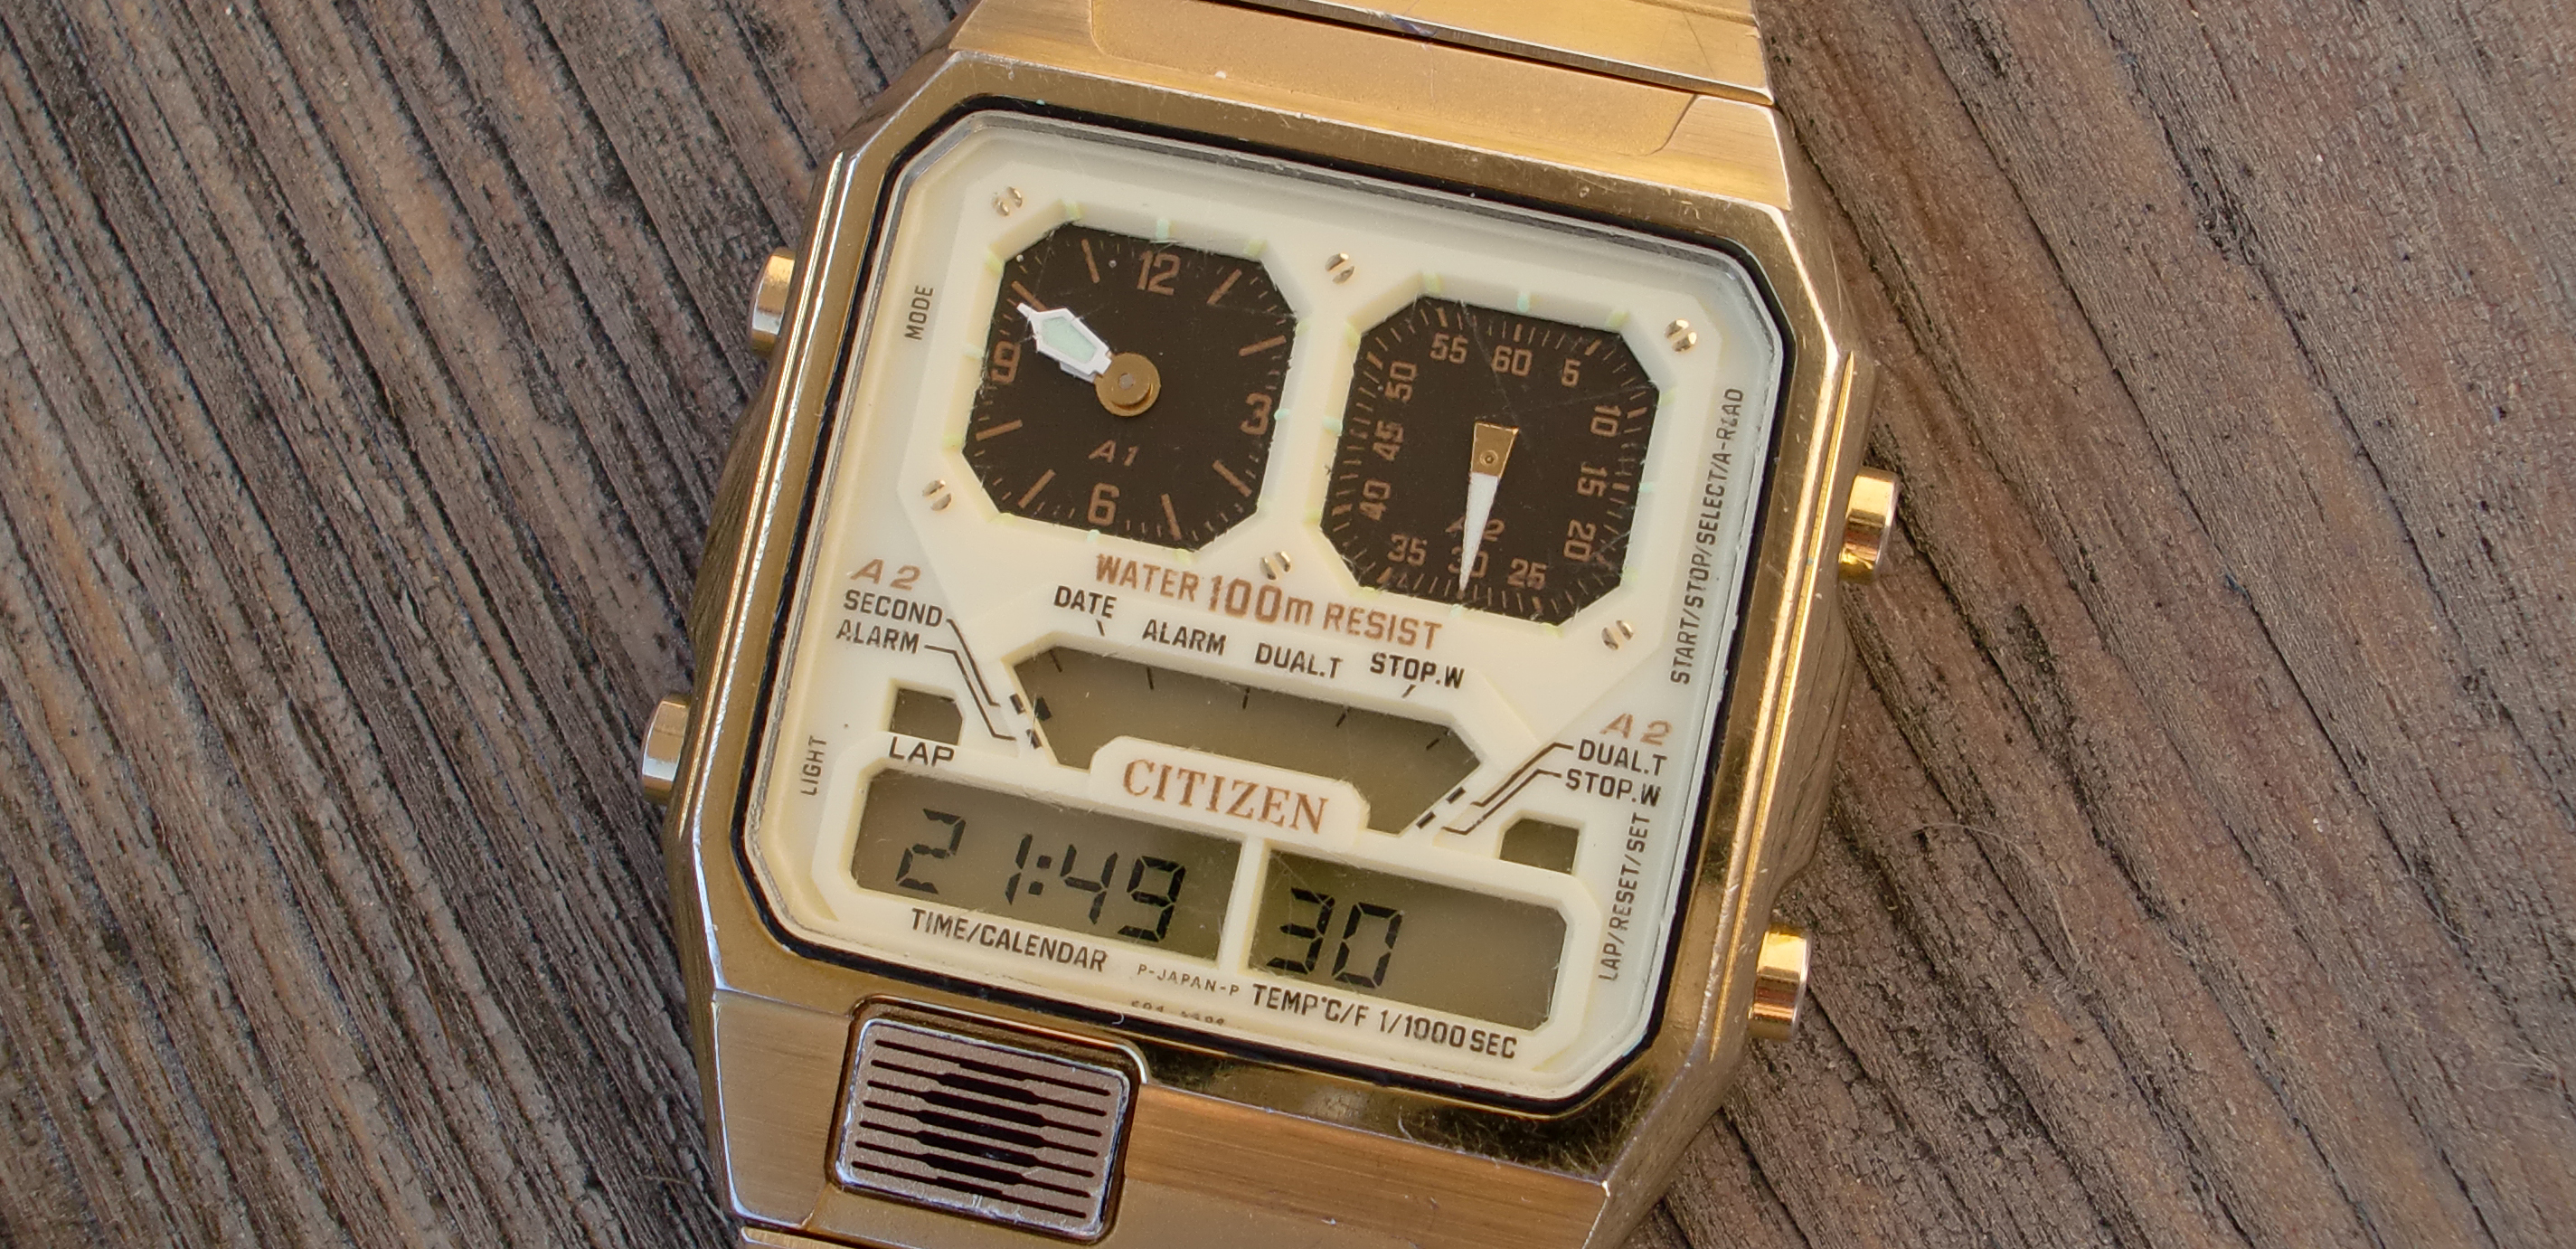 CIMG0619 - Adjusting Hours and Minutes on 2bd Analog Watch